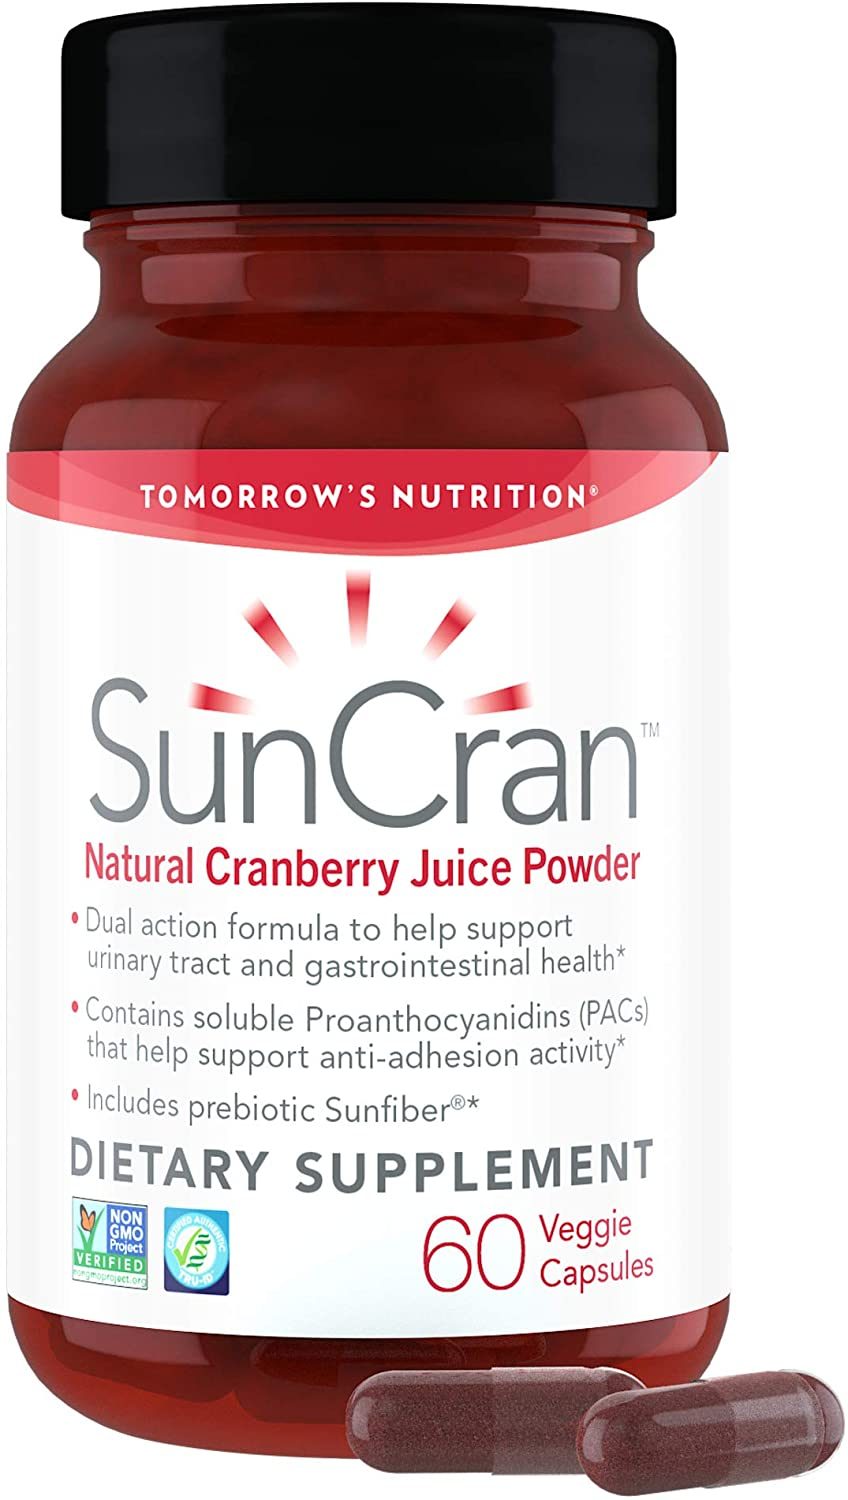 Tomorrow's Nutrition, SunCran, Organic Natural Cranberry Juice Powder for Urinary Tract and Gut Health, Vegan, 60 Capsules (30 Servings)